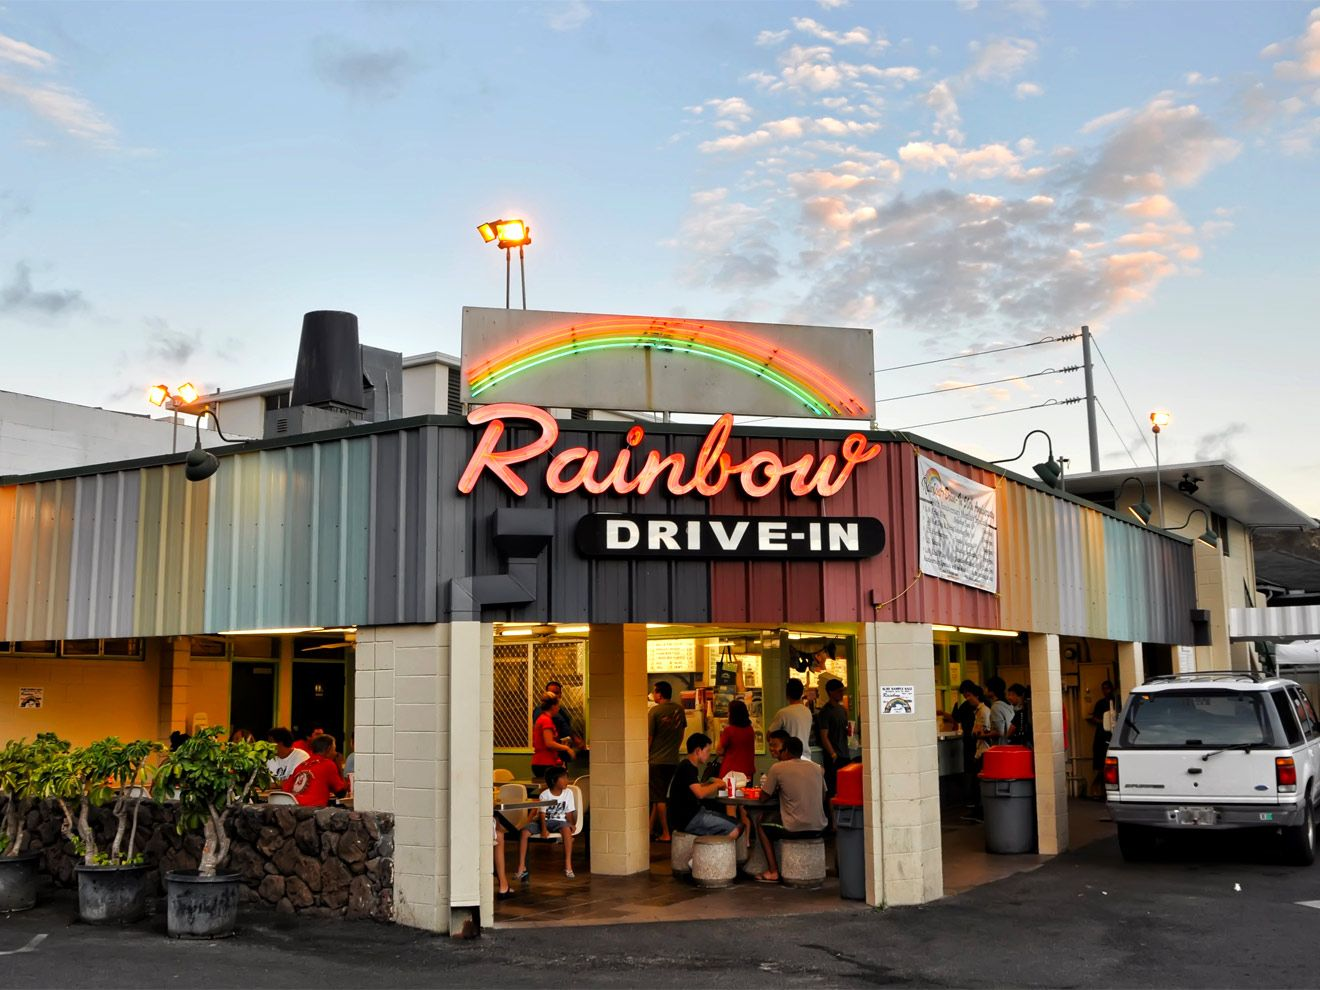 rainbow drive in | Oahu restaurants, Oahu, Honolulu international airport